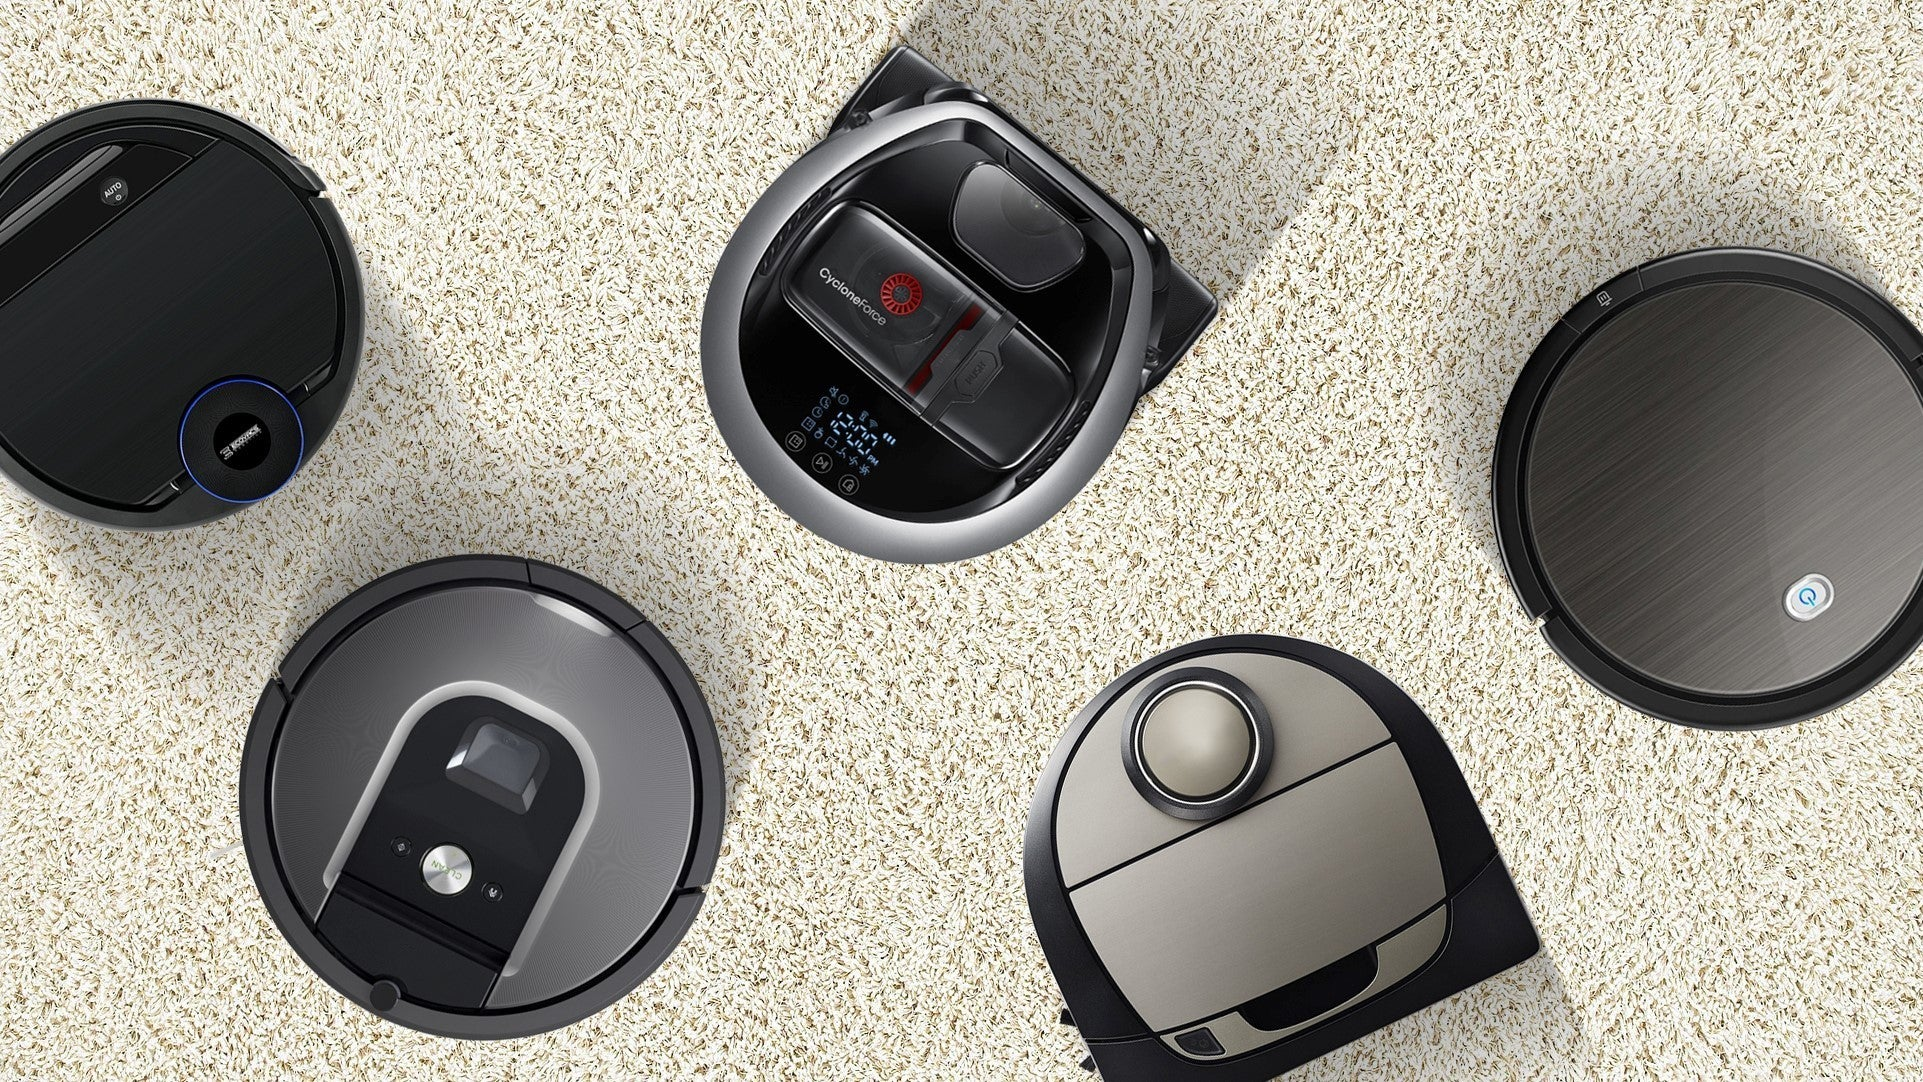 Best Robot Vacuum Cleaners Of TechHive - What is the best robot floor cleaner